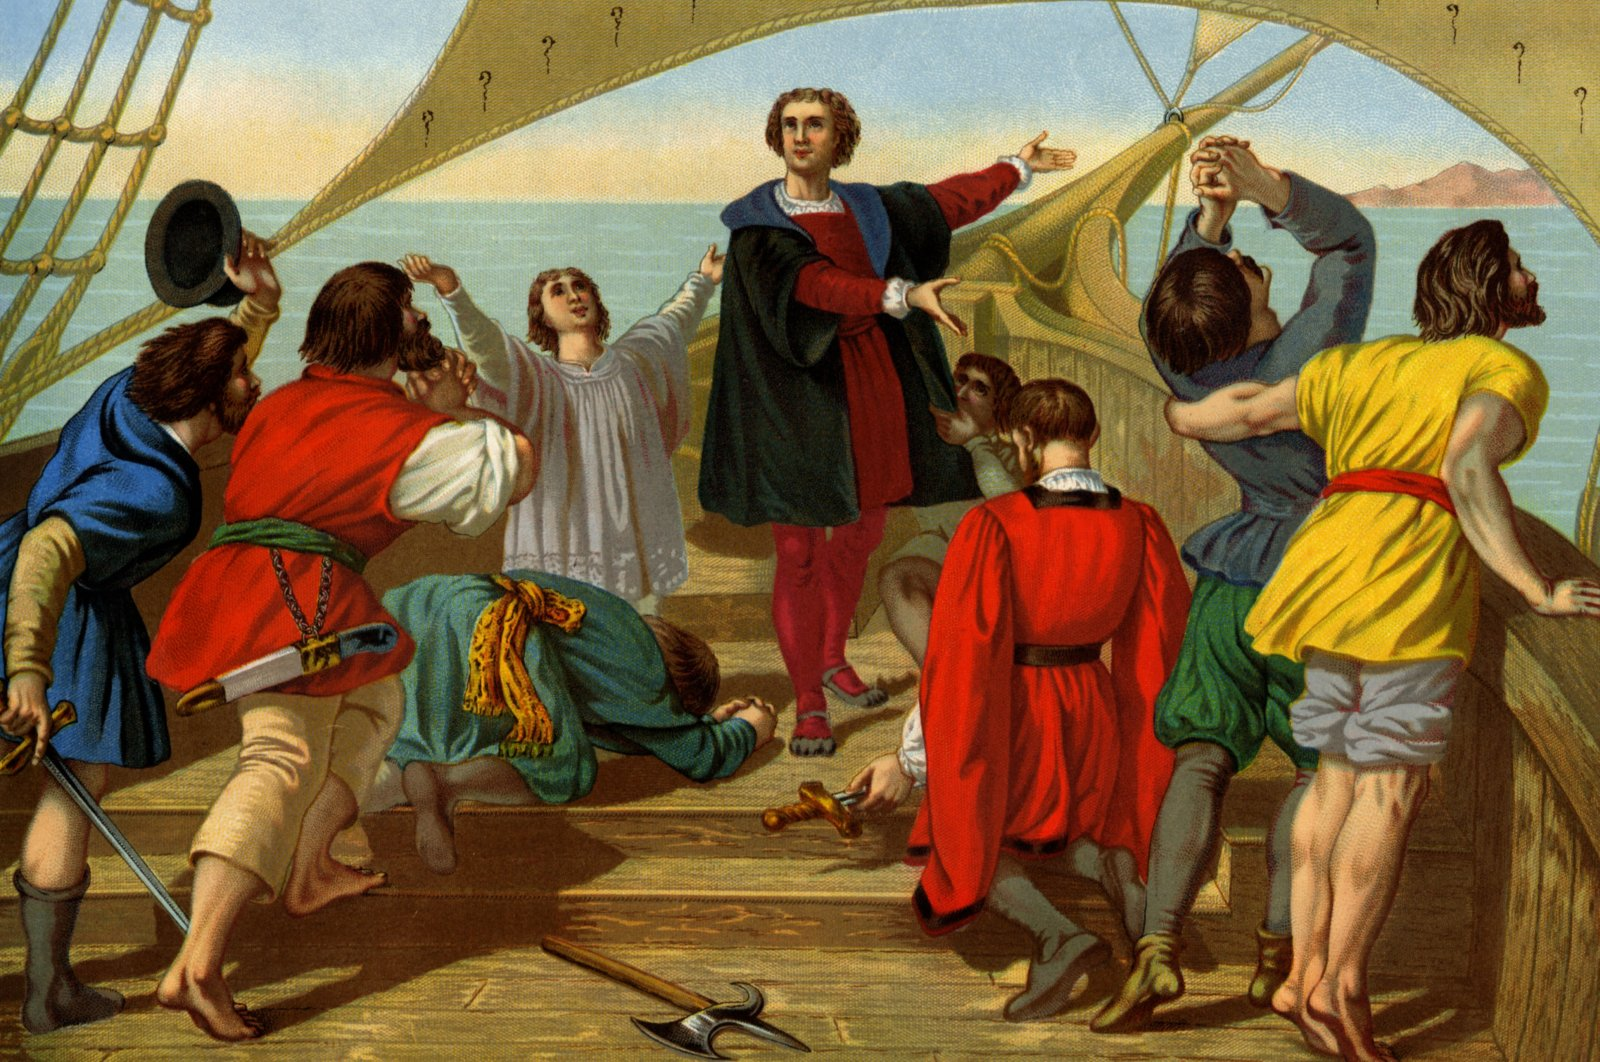 A 19th-century lithograph painting depicts Christopher Columbus (C) and his crew aboard the Spanish vessel Santa Maria, reacting to seeing North America for the first time in 1492.